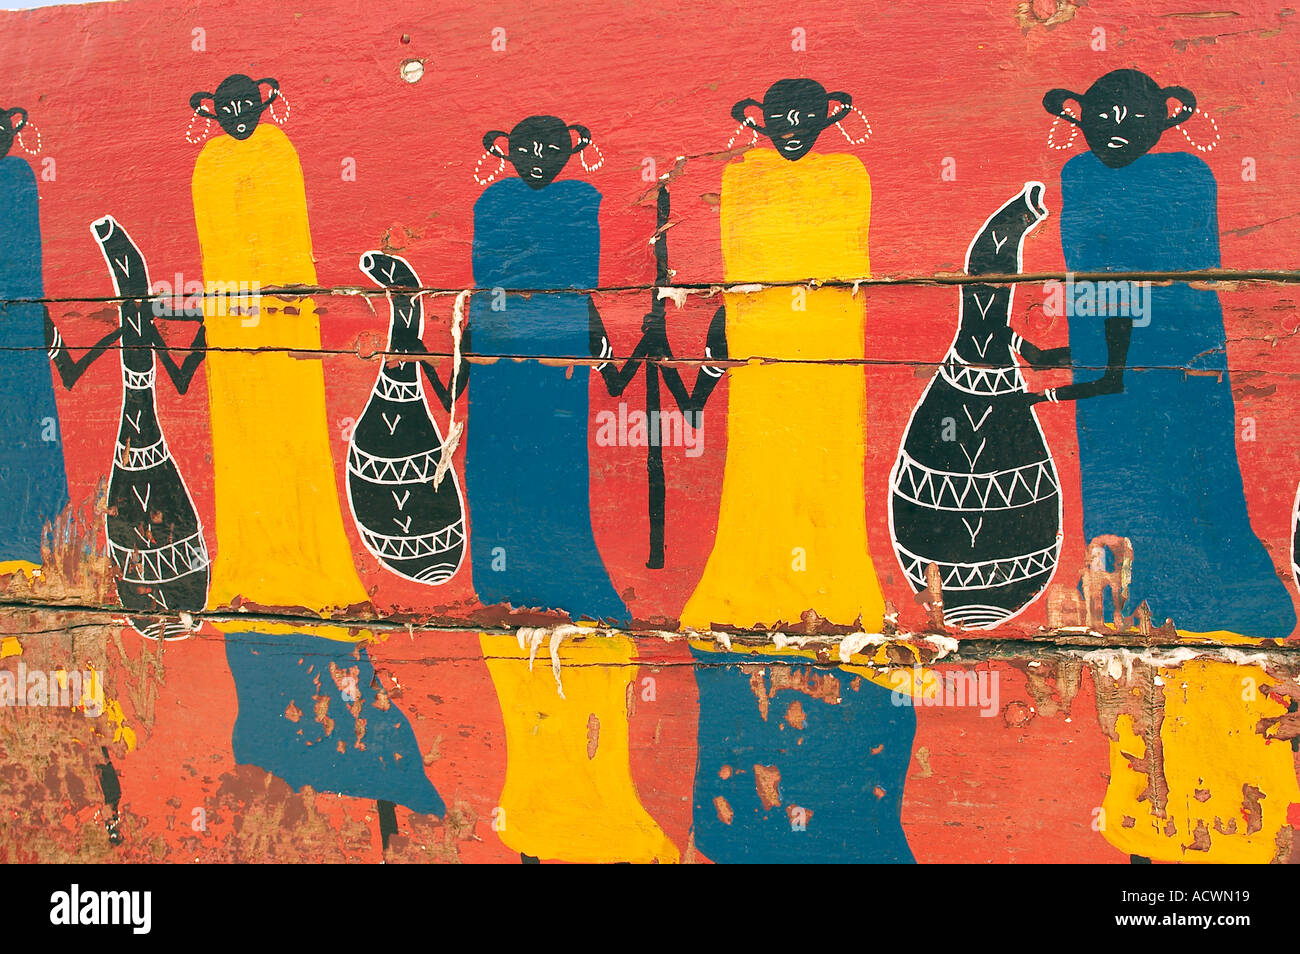 naive afrikanische Malerei auf einem Holzboot naive african painting on a wooden boat - Stock Image